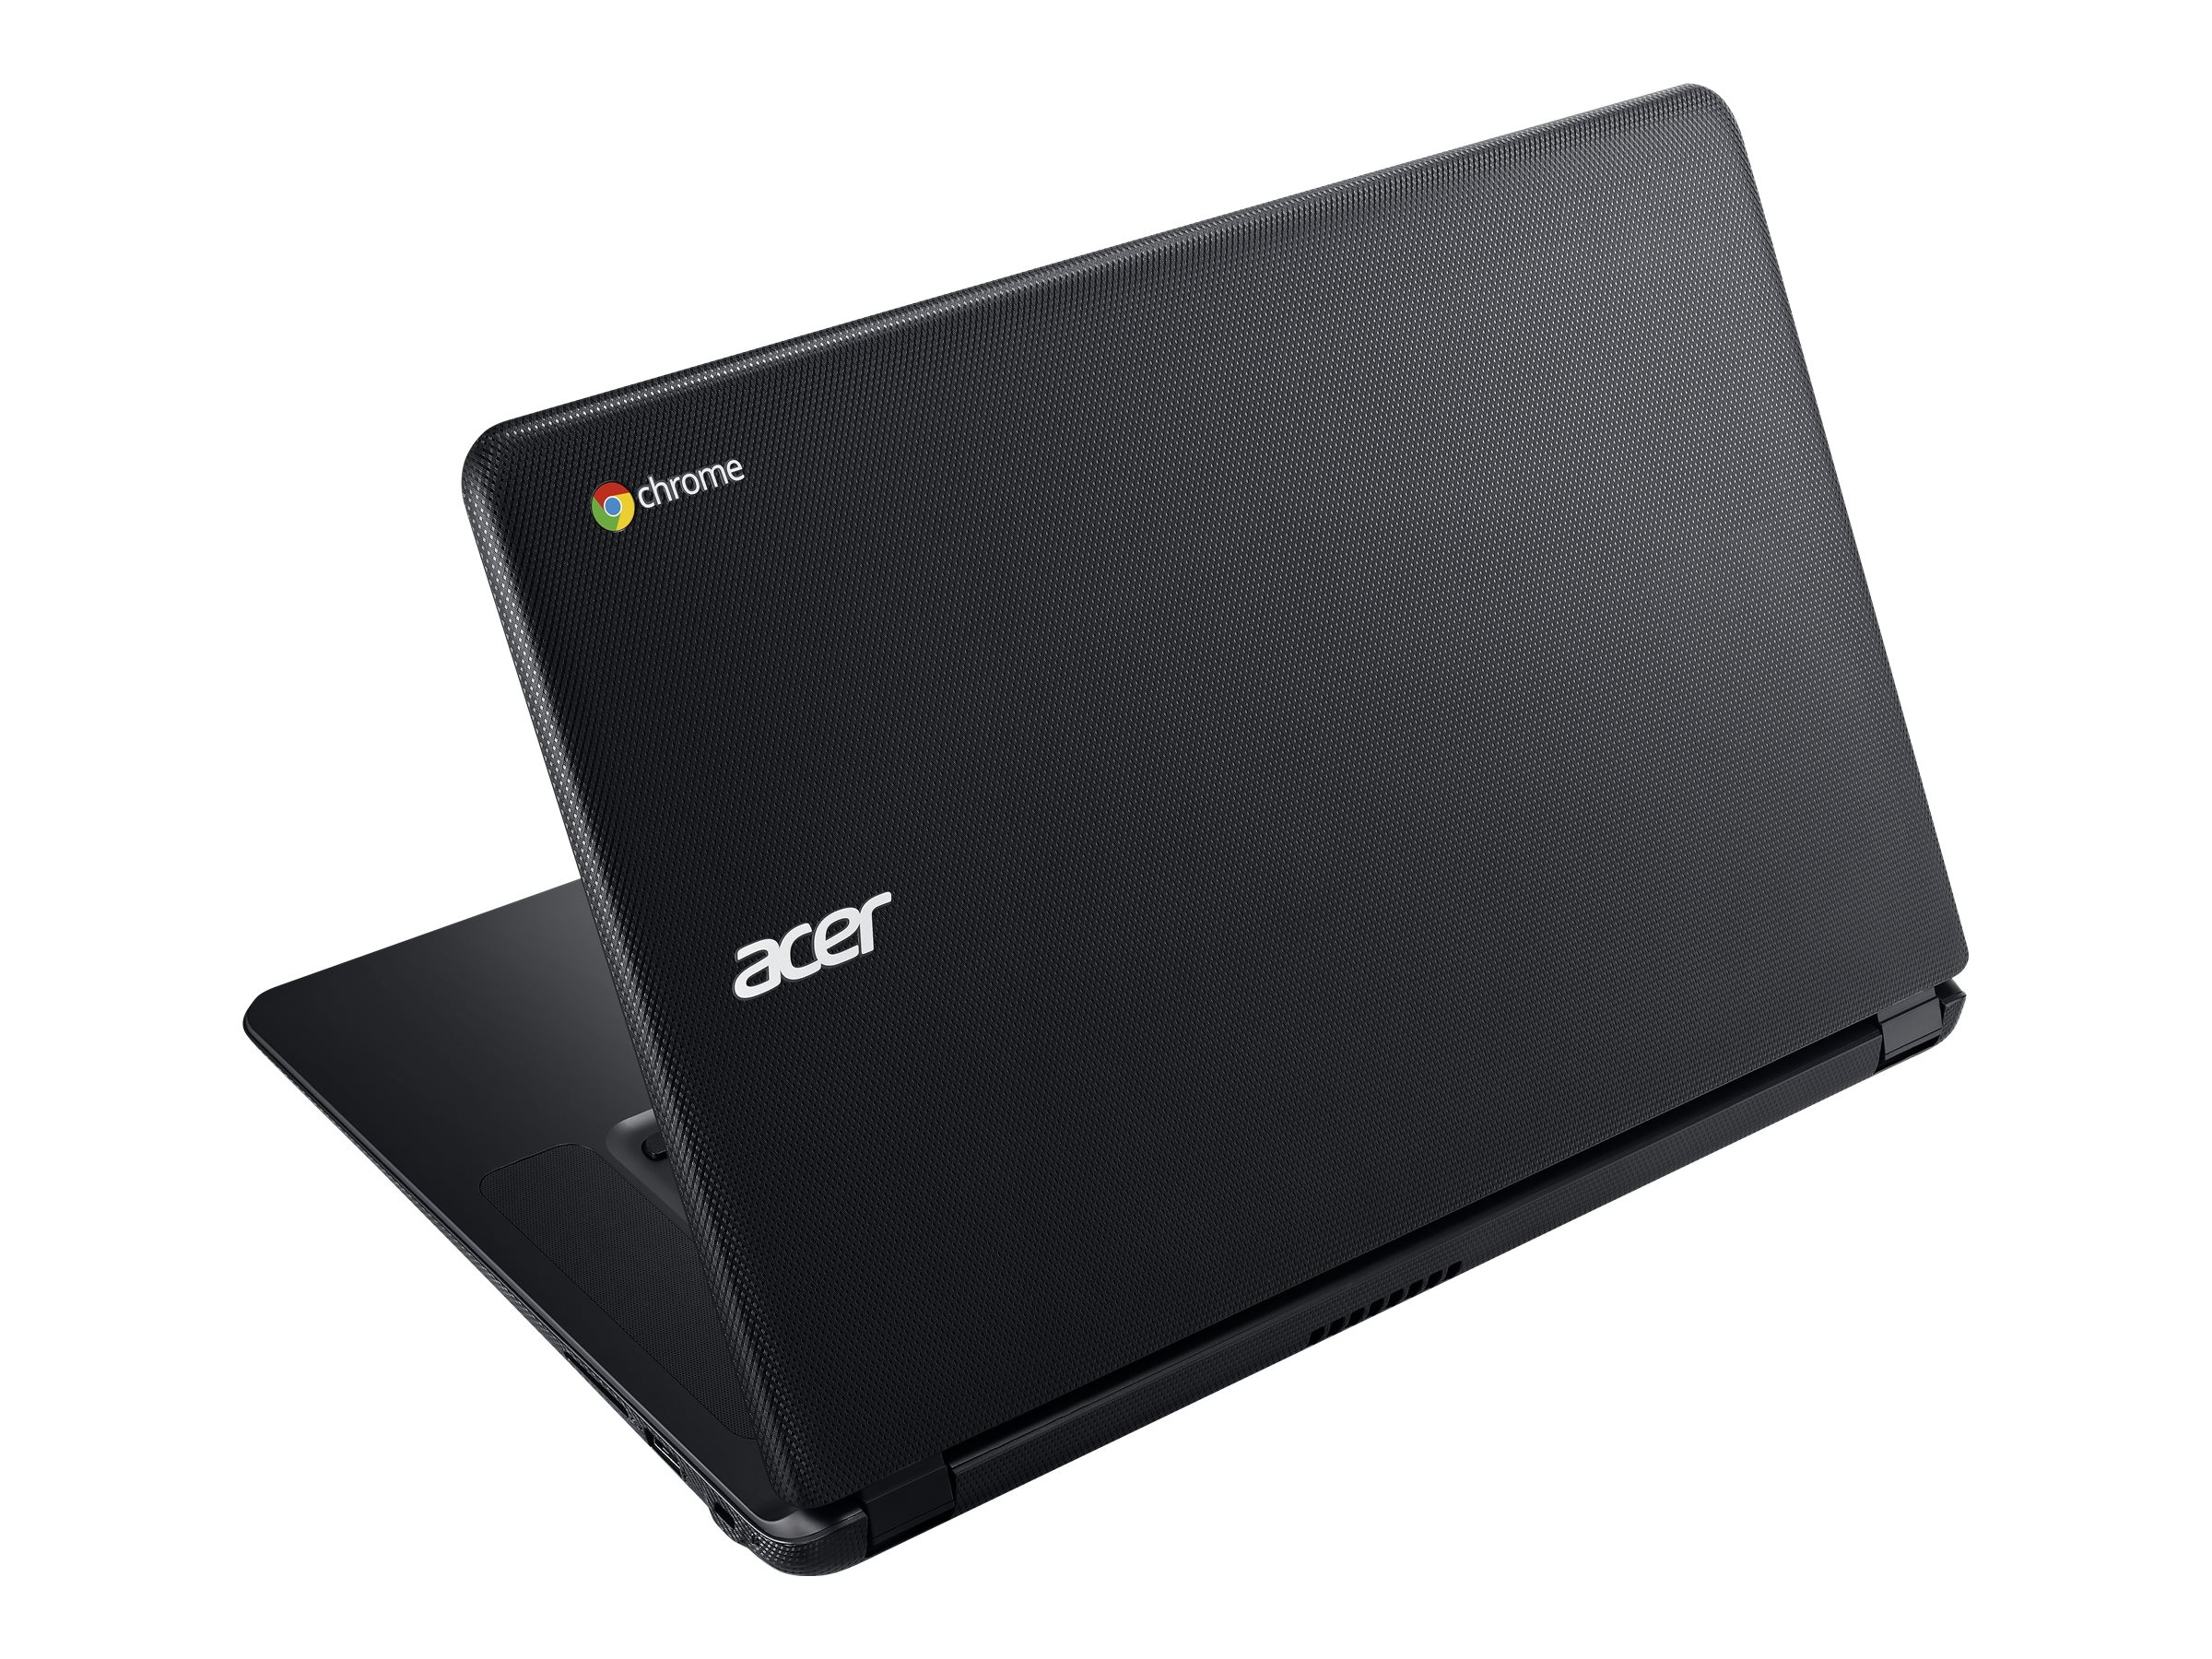 Acer Chromebook C910-C453 1.5GHz Celeron 15.6in display, NX.EF3AA.003